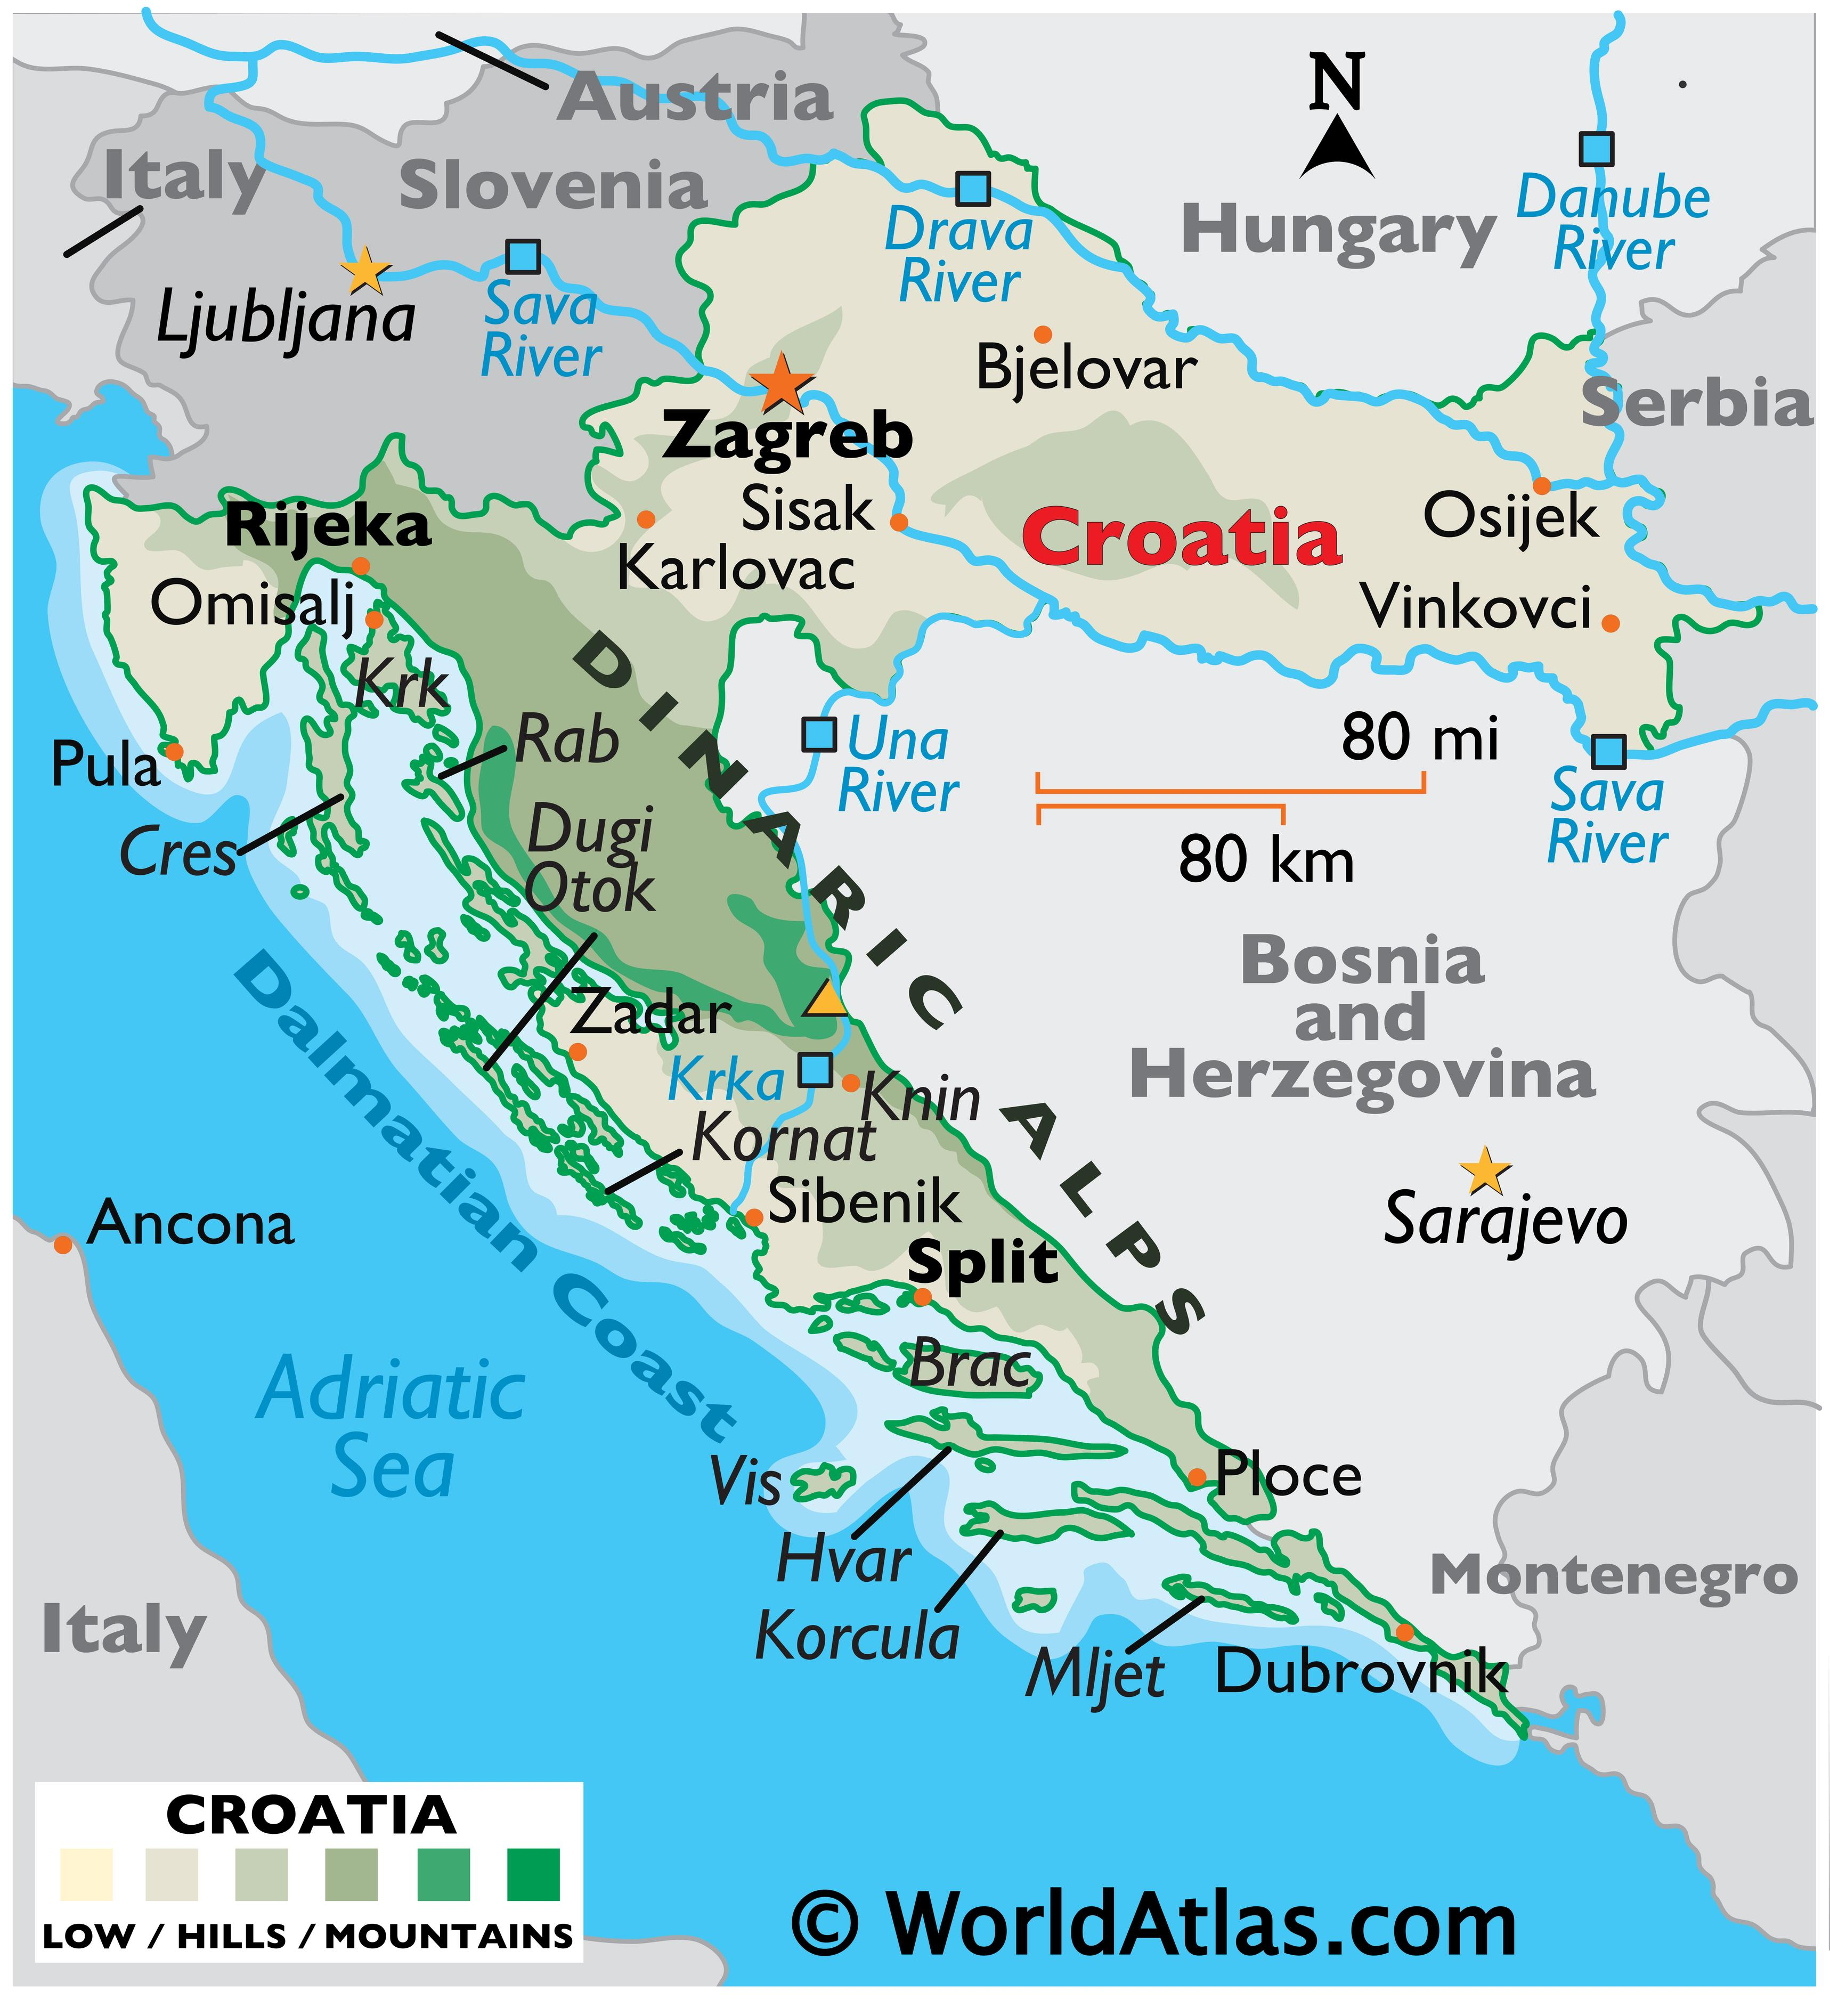 Physical Map of the Croatia showing terrain, mountain ranges, islands, extreme points, major rivers, important cities, international boundaries, etc.